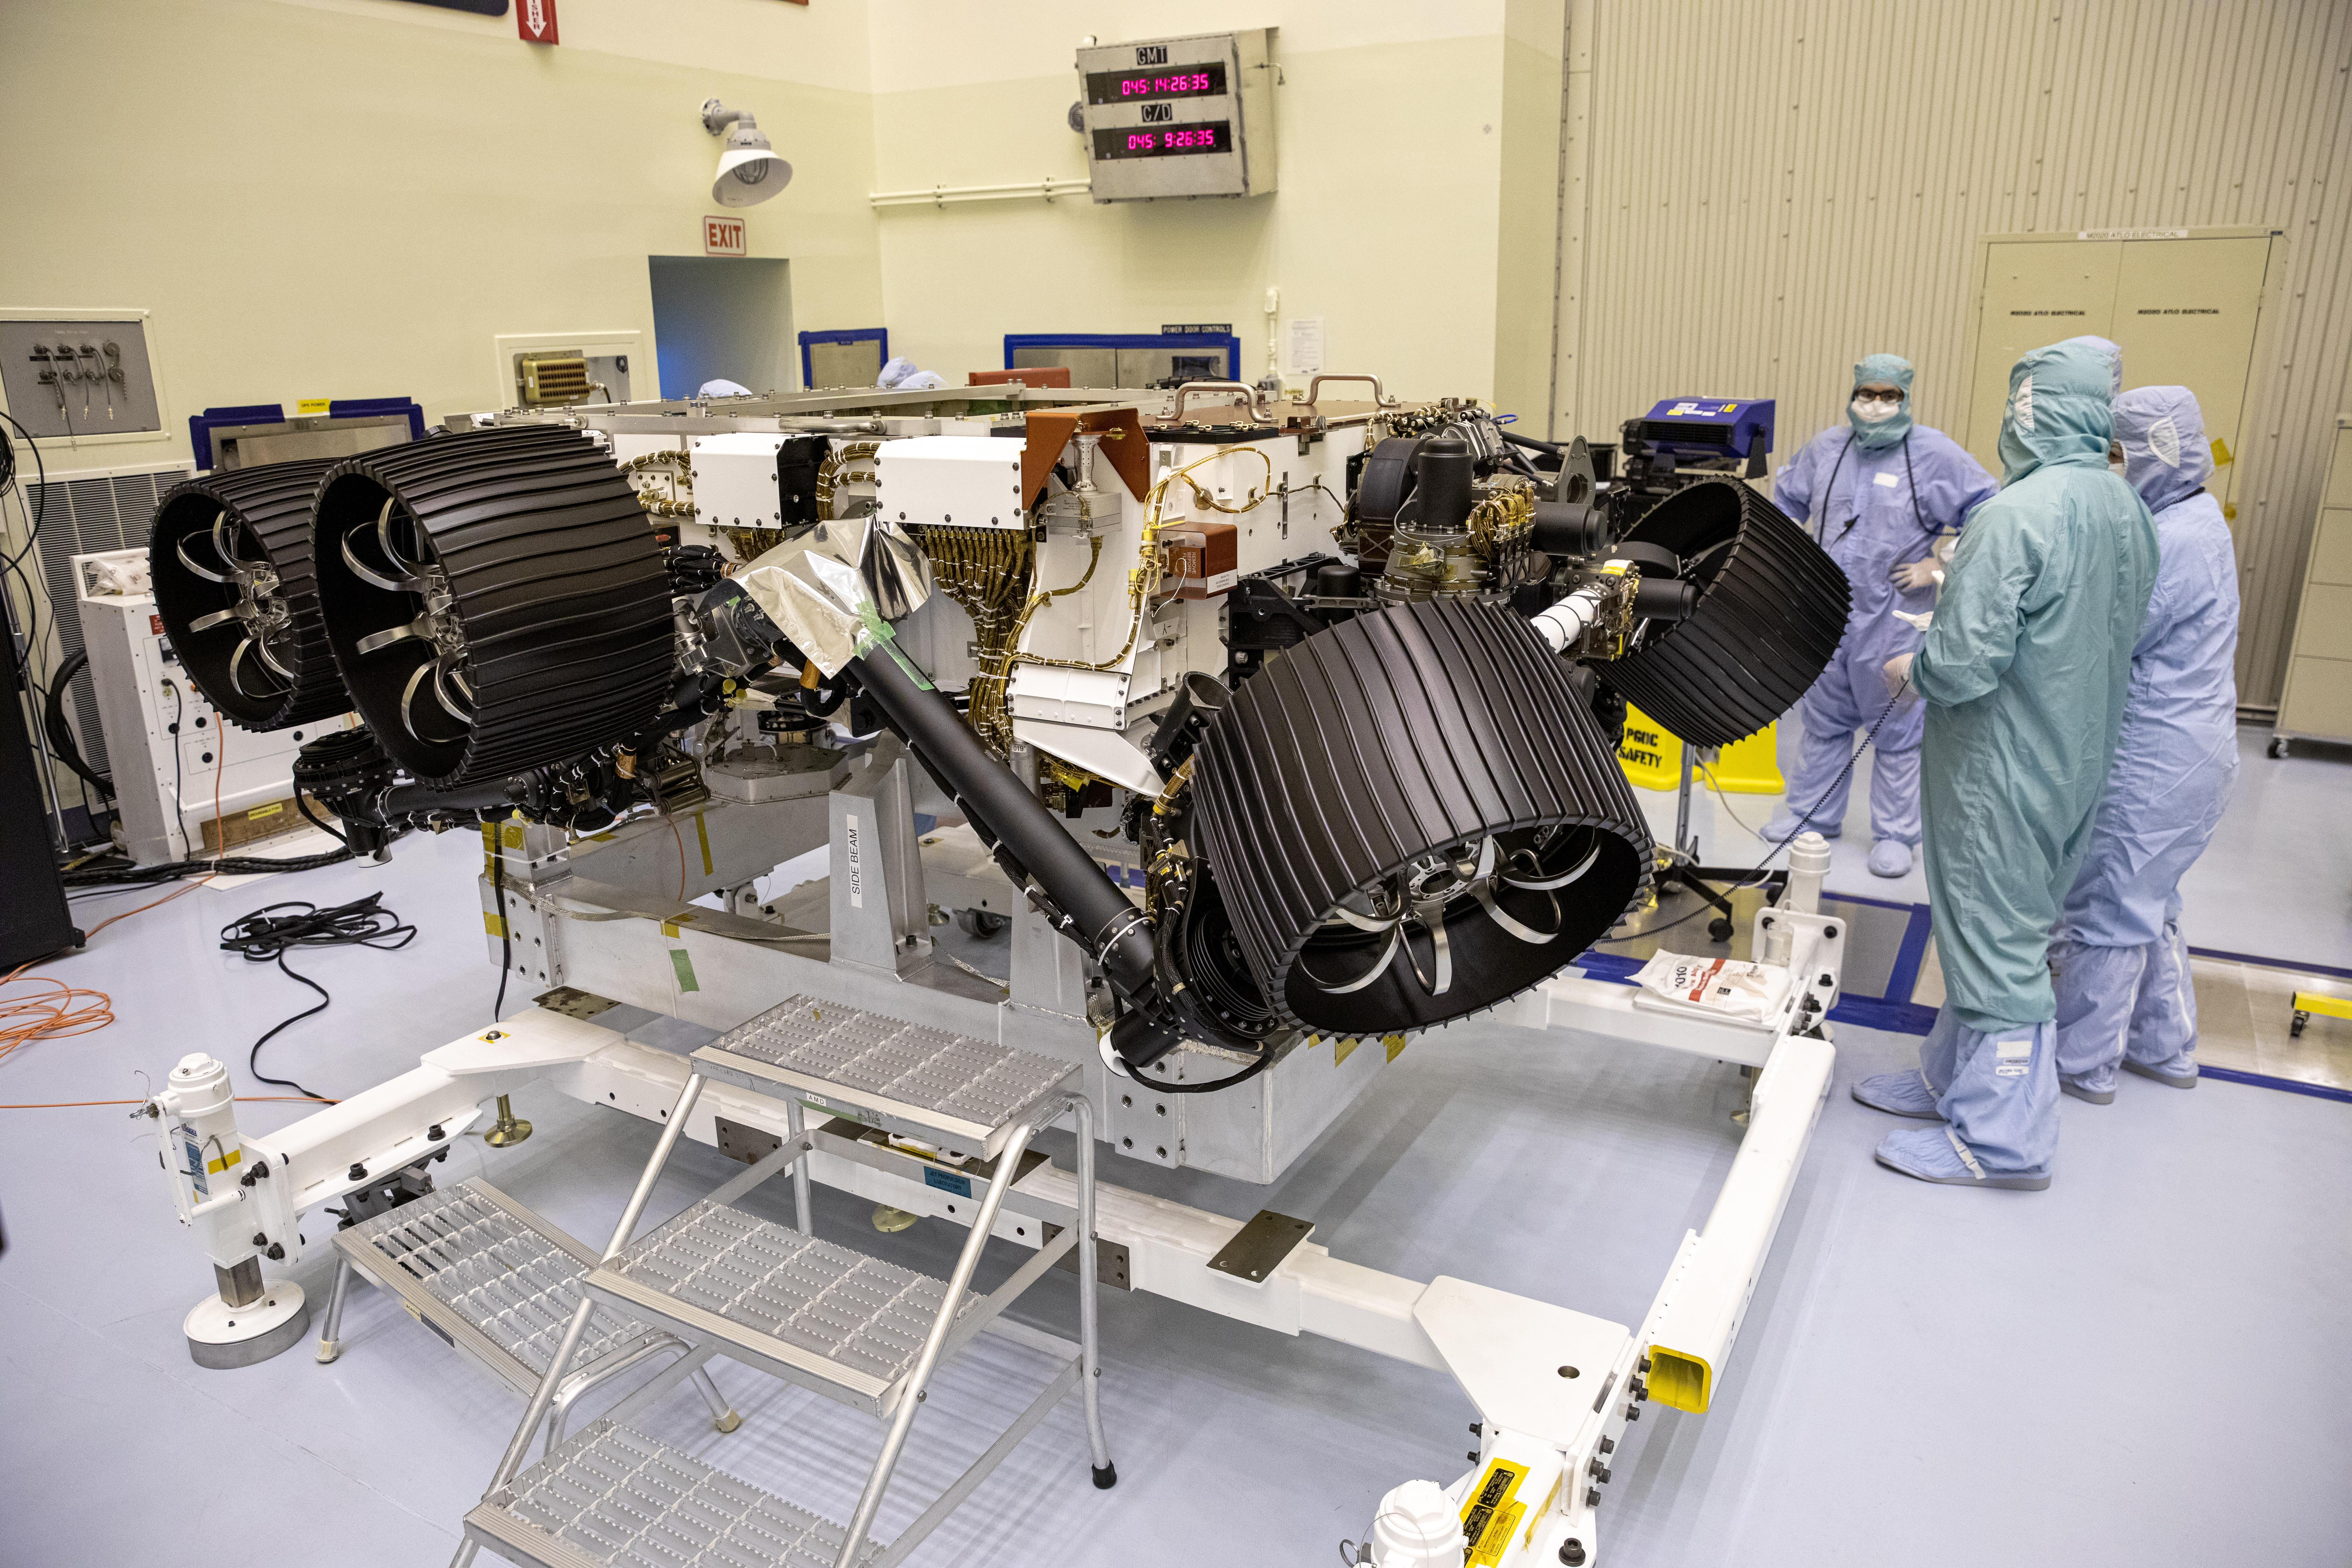 NASAs Mars 2020 rover, now called Perseverance, undergoes processing at a payload servicing facility at NASAs Kennedy Space Center on Feb. 14, 2020.